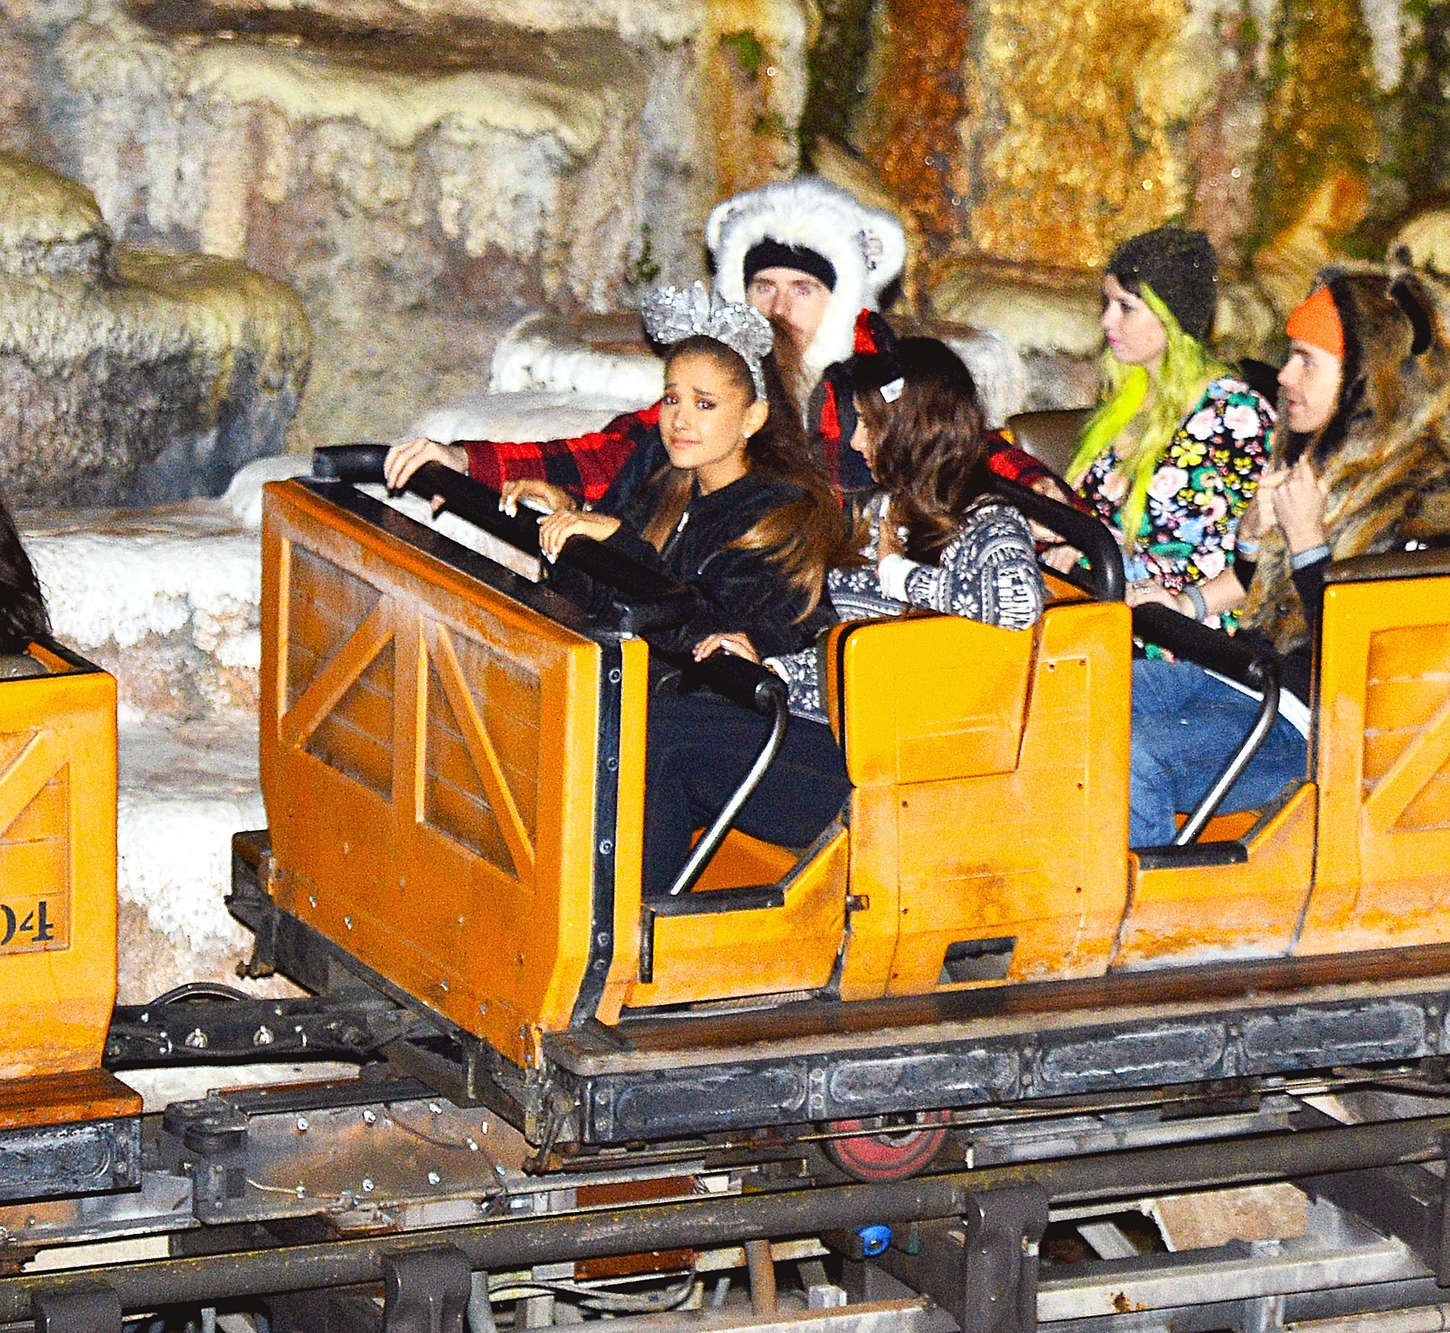 Ariana Grande at Disney World in Orlando